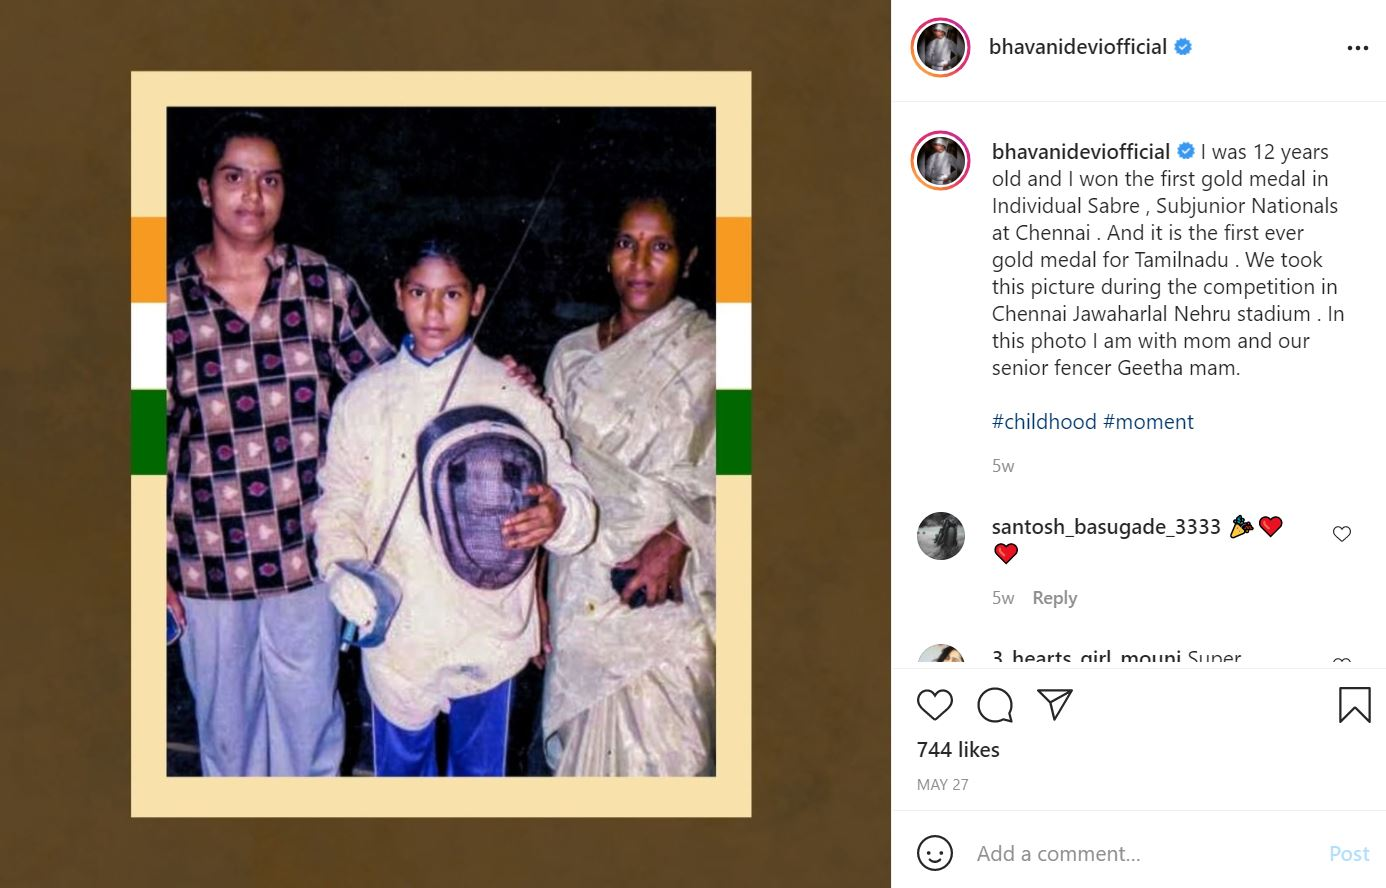 The screenshot of Bhavani Devis's Instagram post (when she won her first gold medal in Individual Sabre at the age of 12)